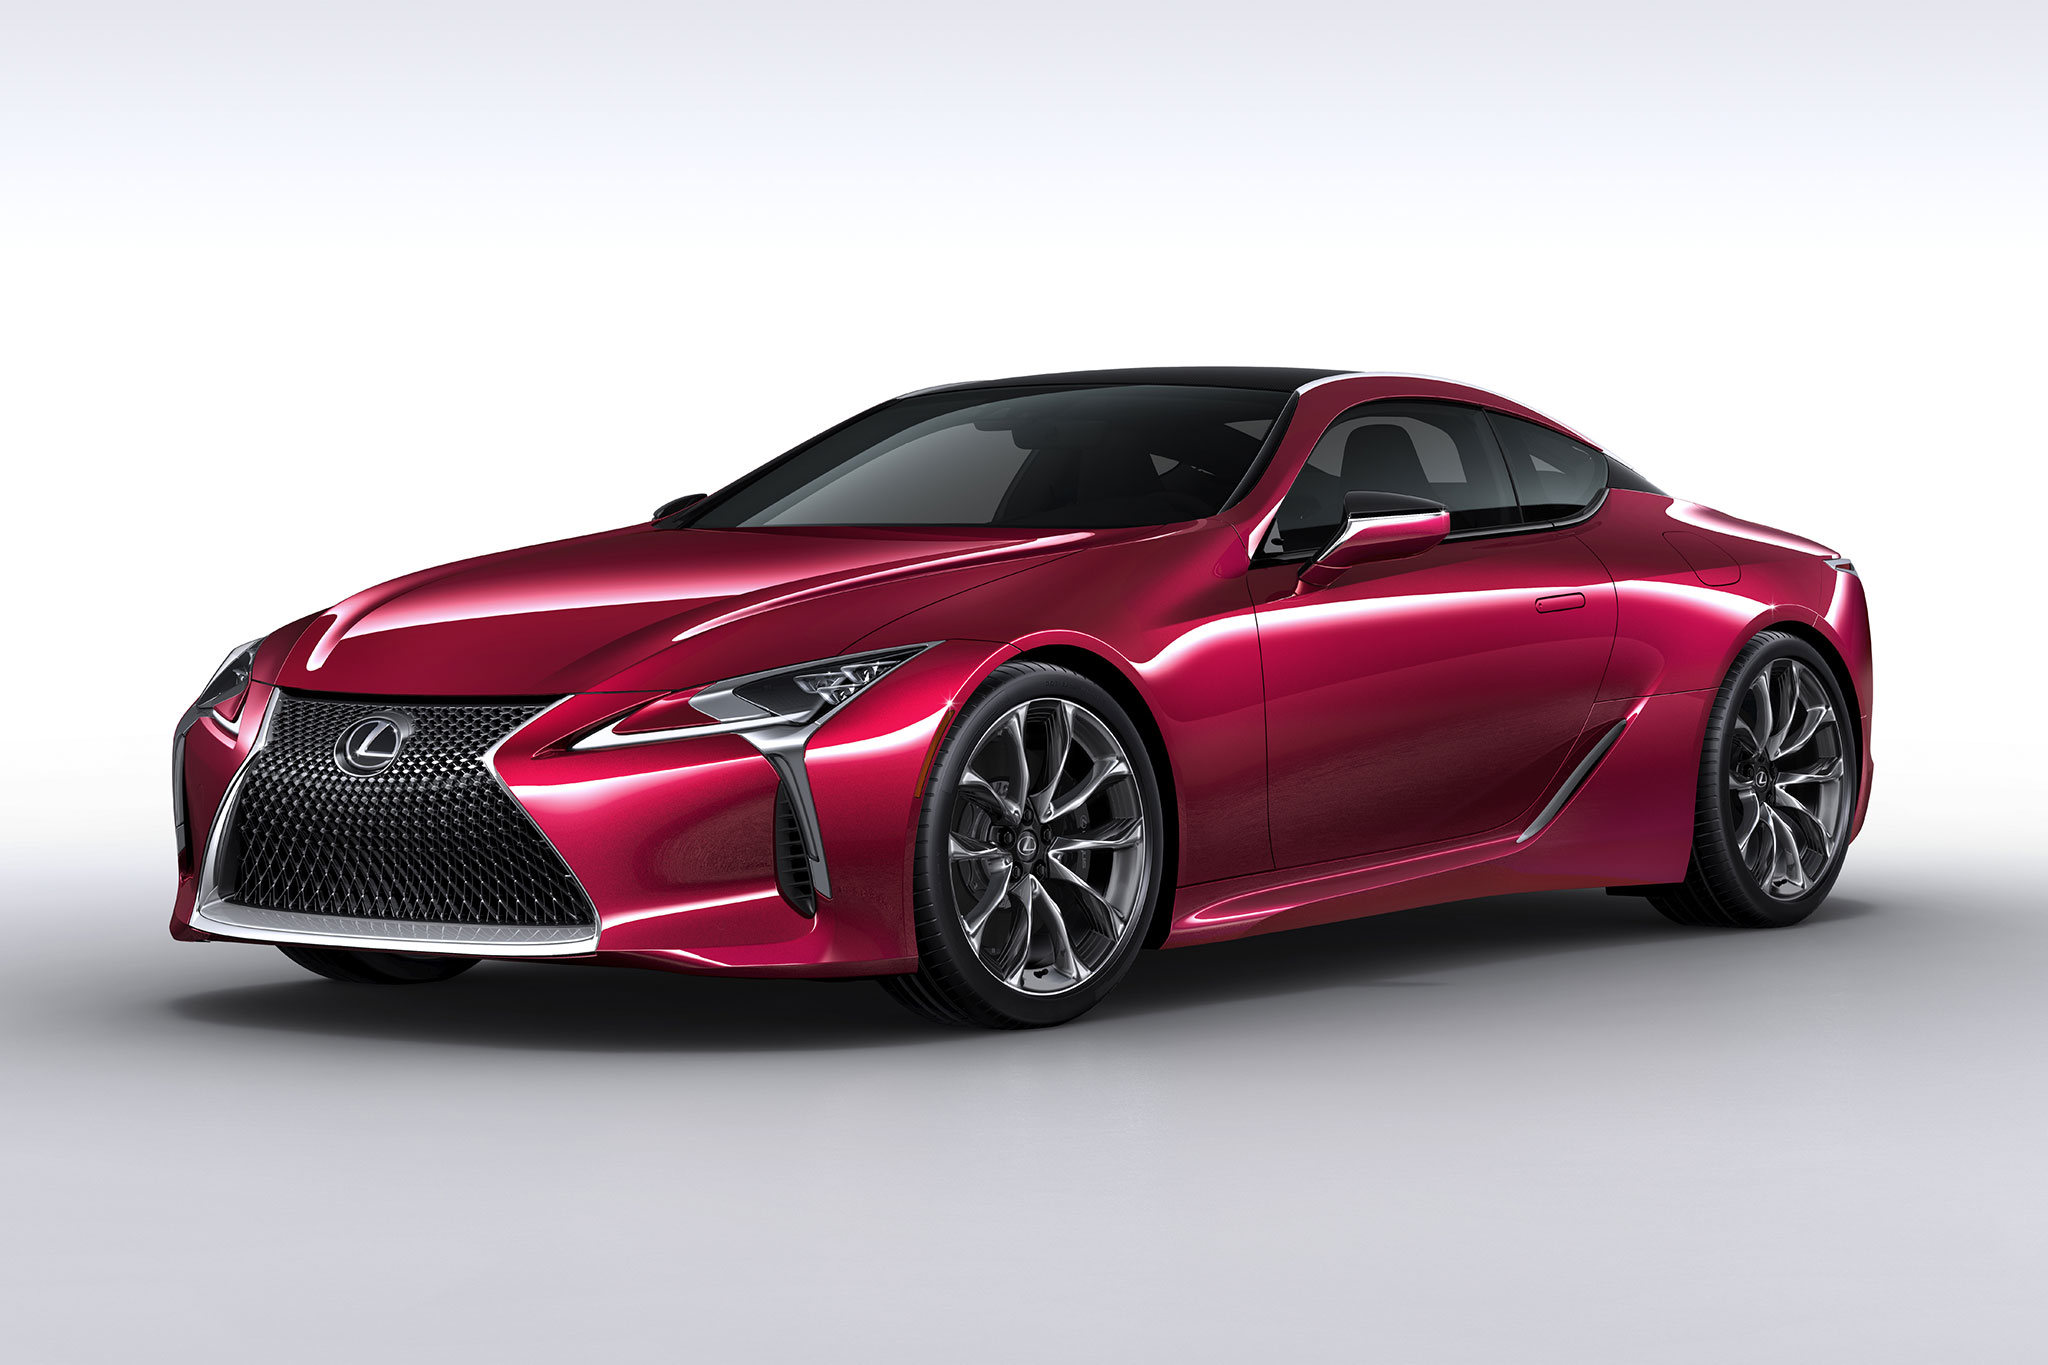 2017 Lexus Lc 500 Toyodas Vision For Comes Into Focus Rx450h Wiring Diagram Show More